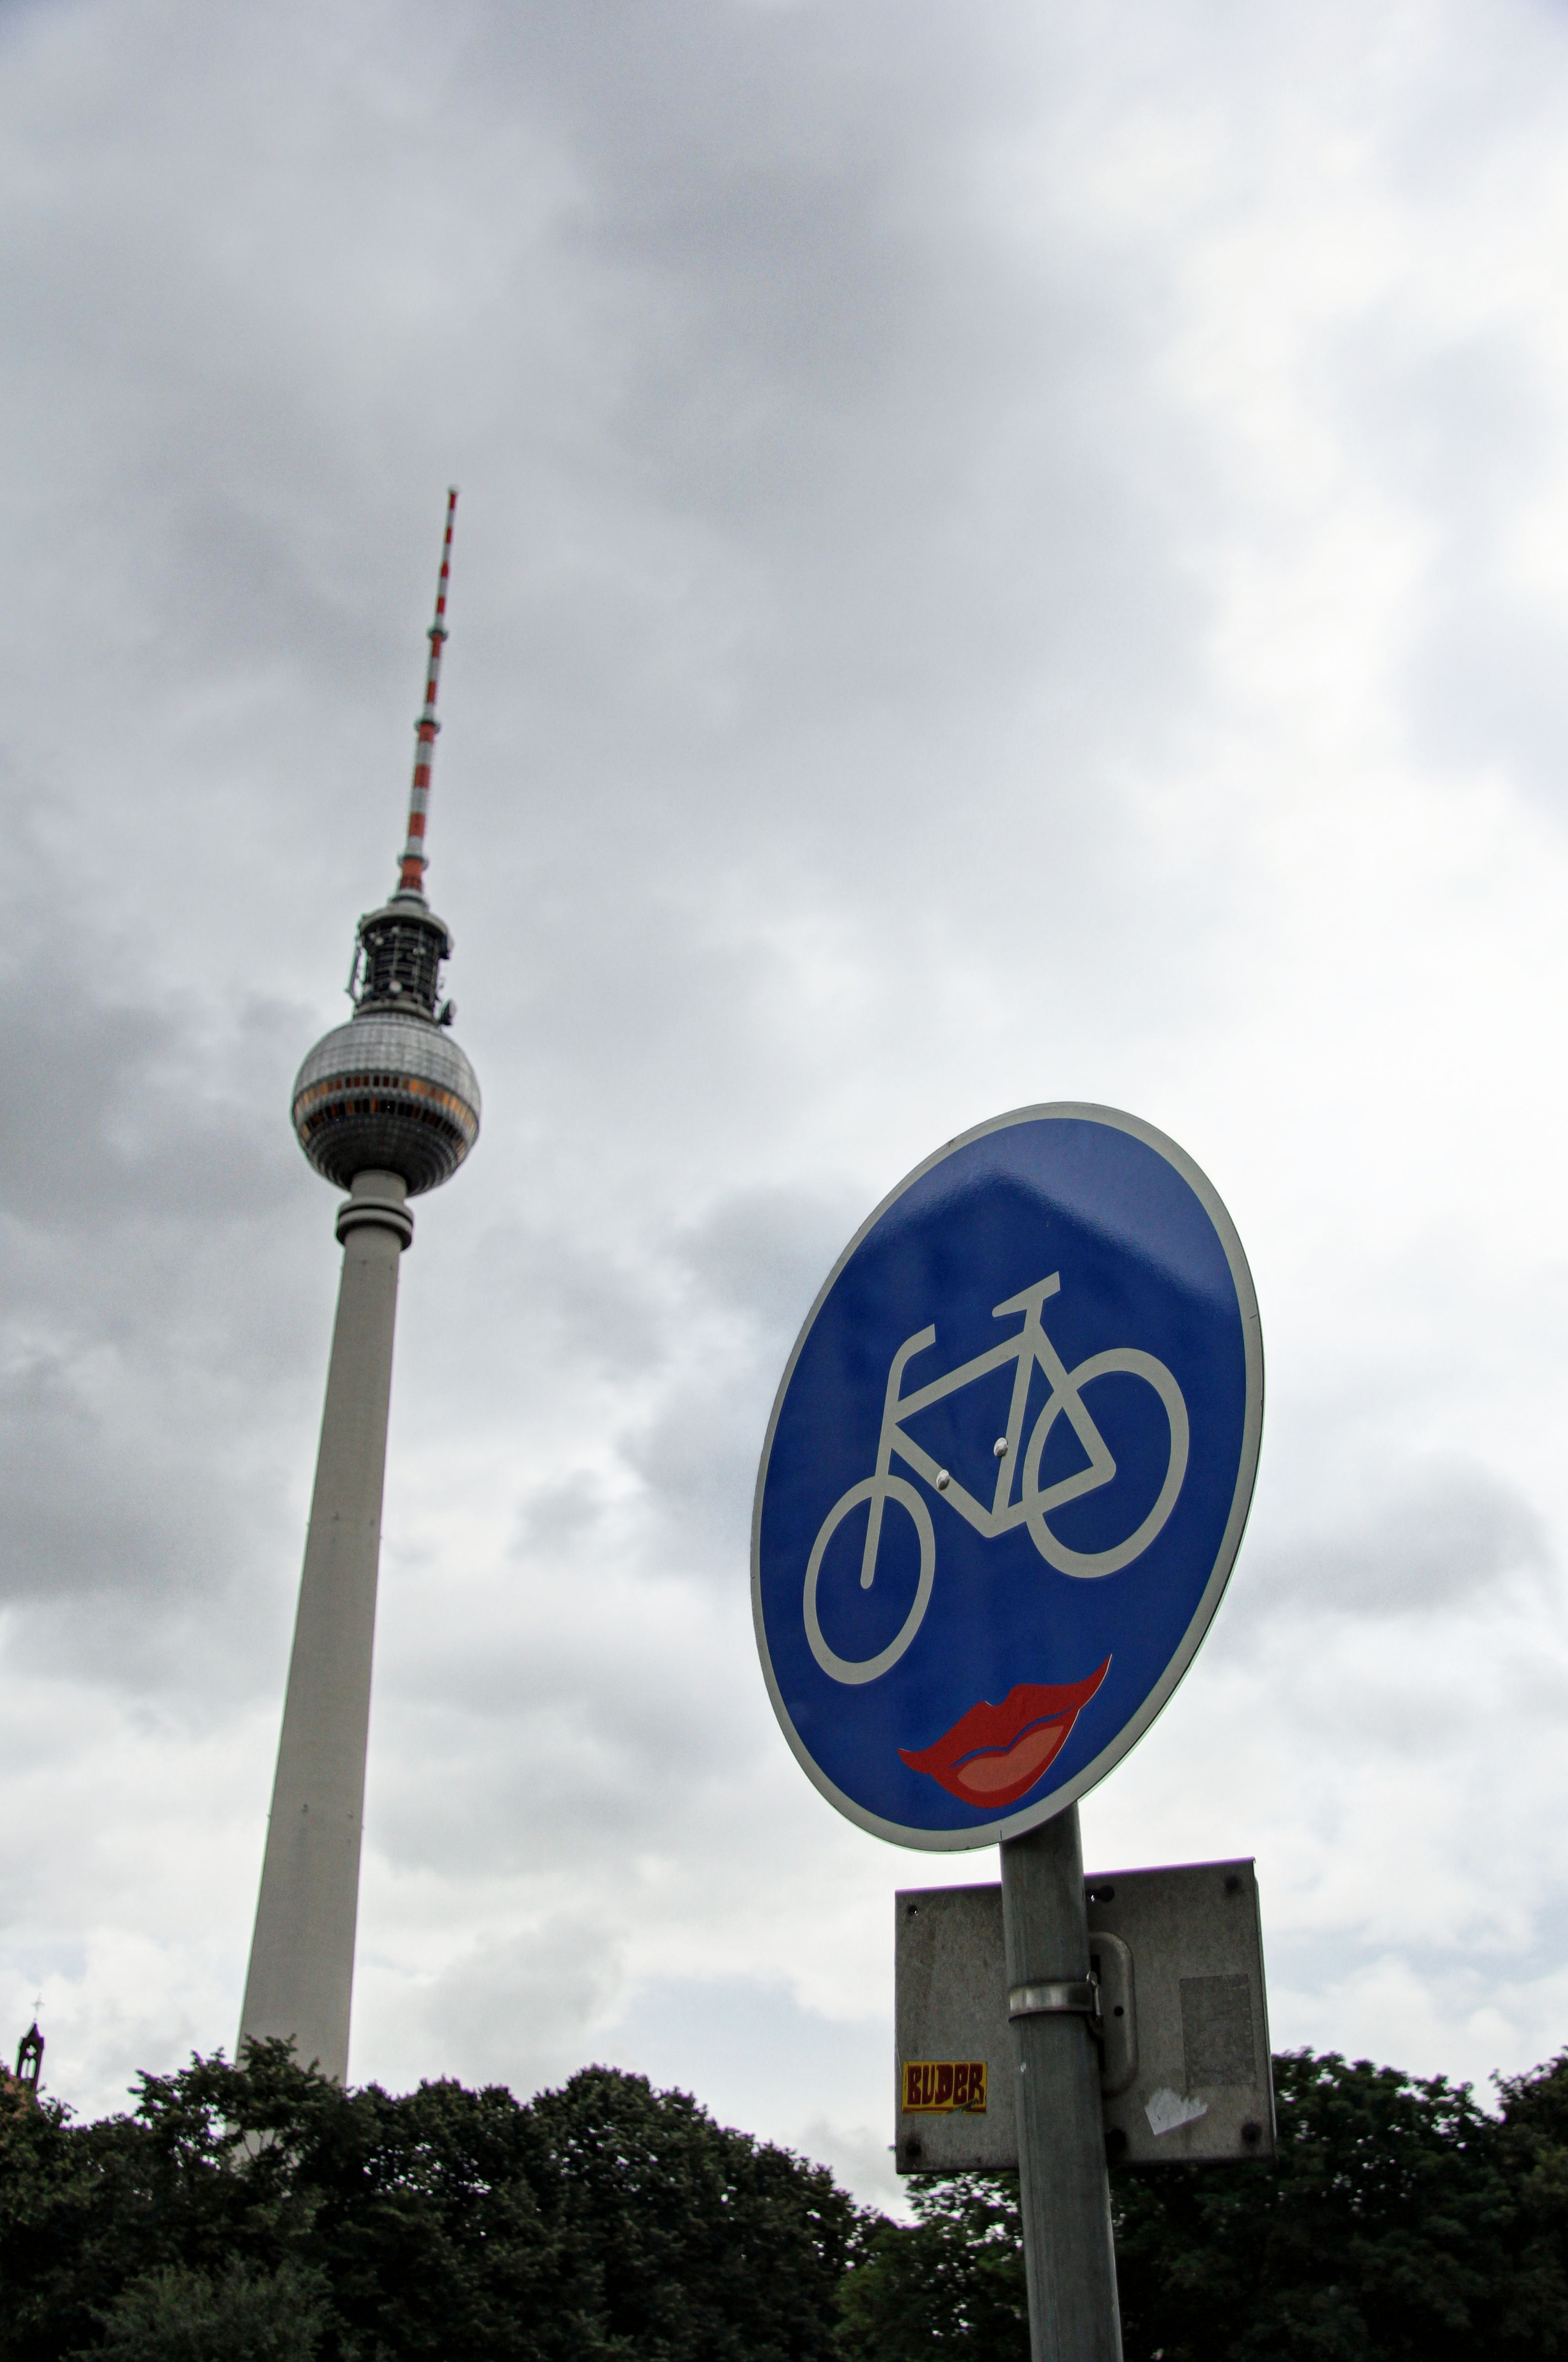 Smile - Street Art by CLET (Clet Abraham) on a Bicycle Lane street sign in Berlin